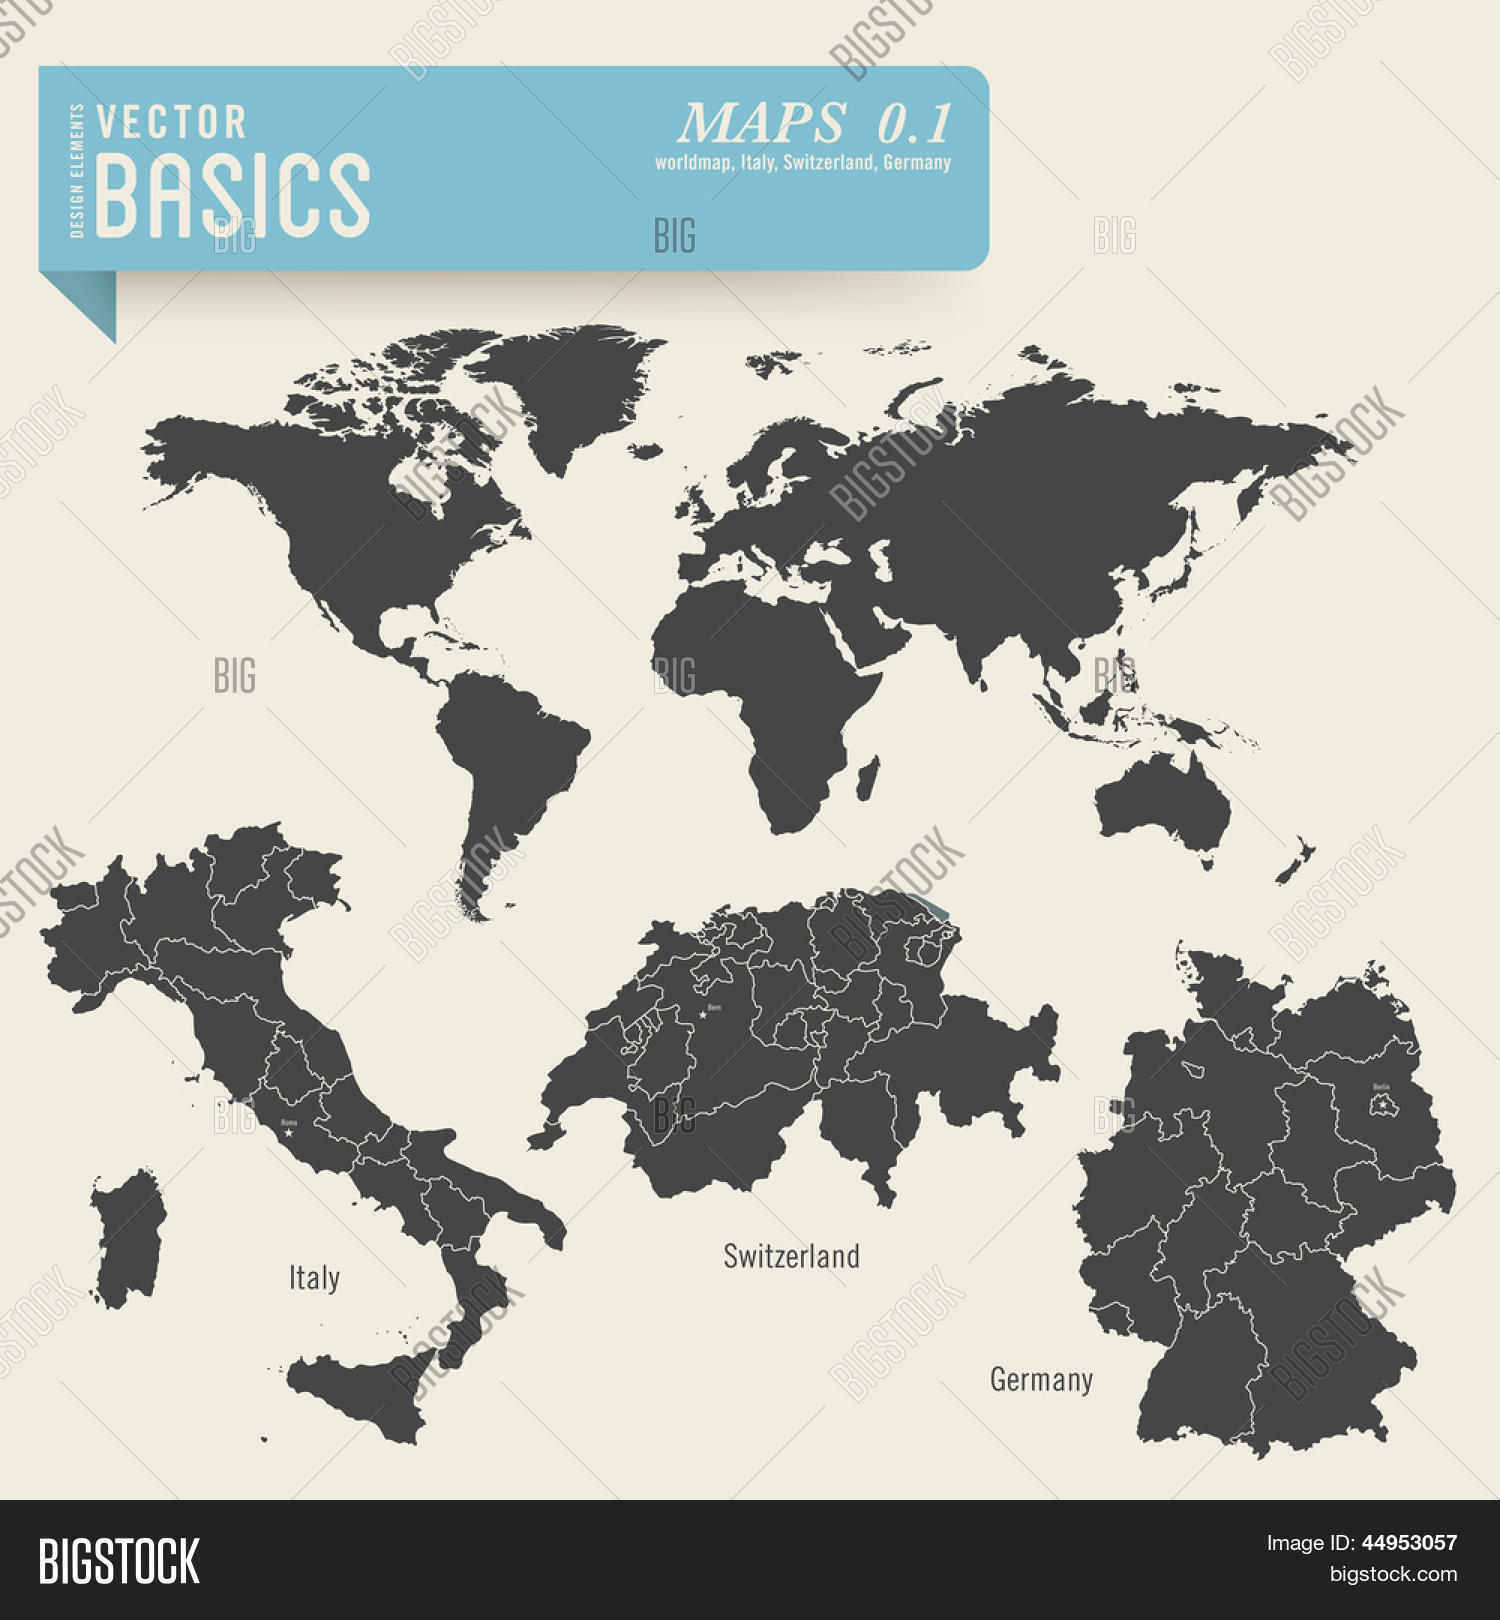 Map Of Germany And Italy With Cities.Vector Basics Maps 1 Vector Photo Free Trial Bigstock